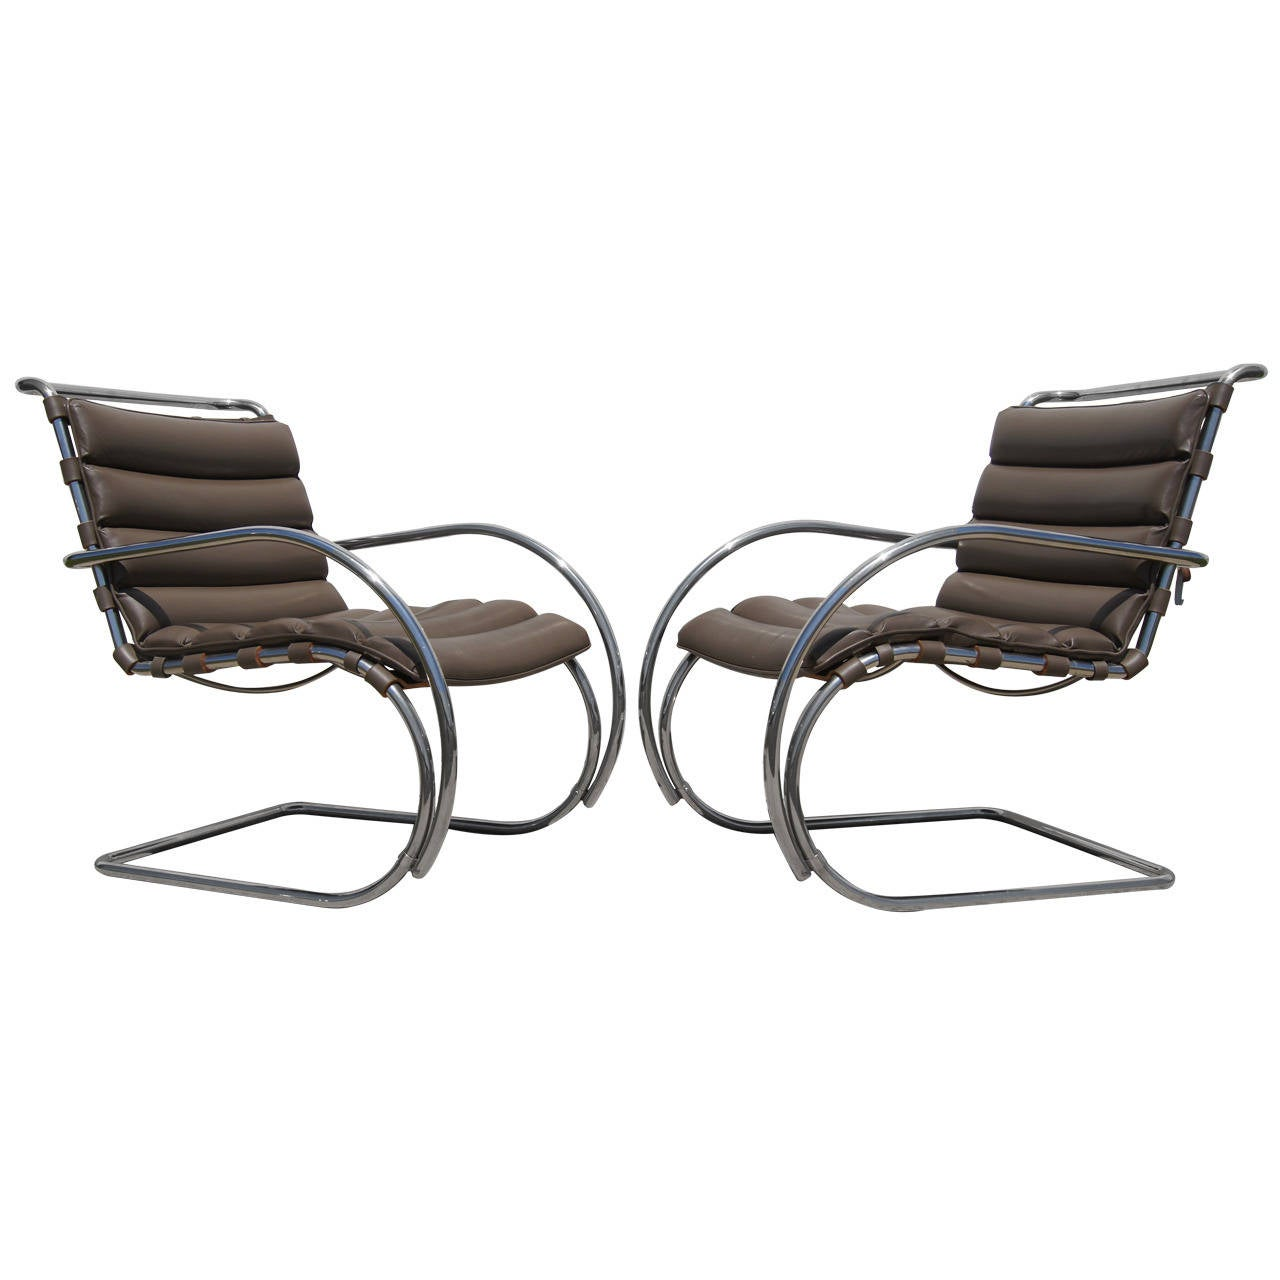 Pair of Brown Leather MR Lounge Armchairs by Mies van der Rohe for Knoll